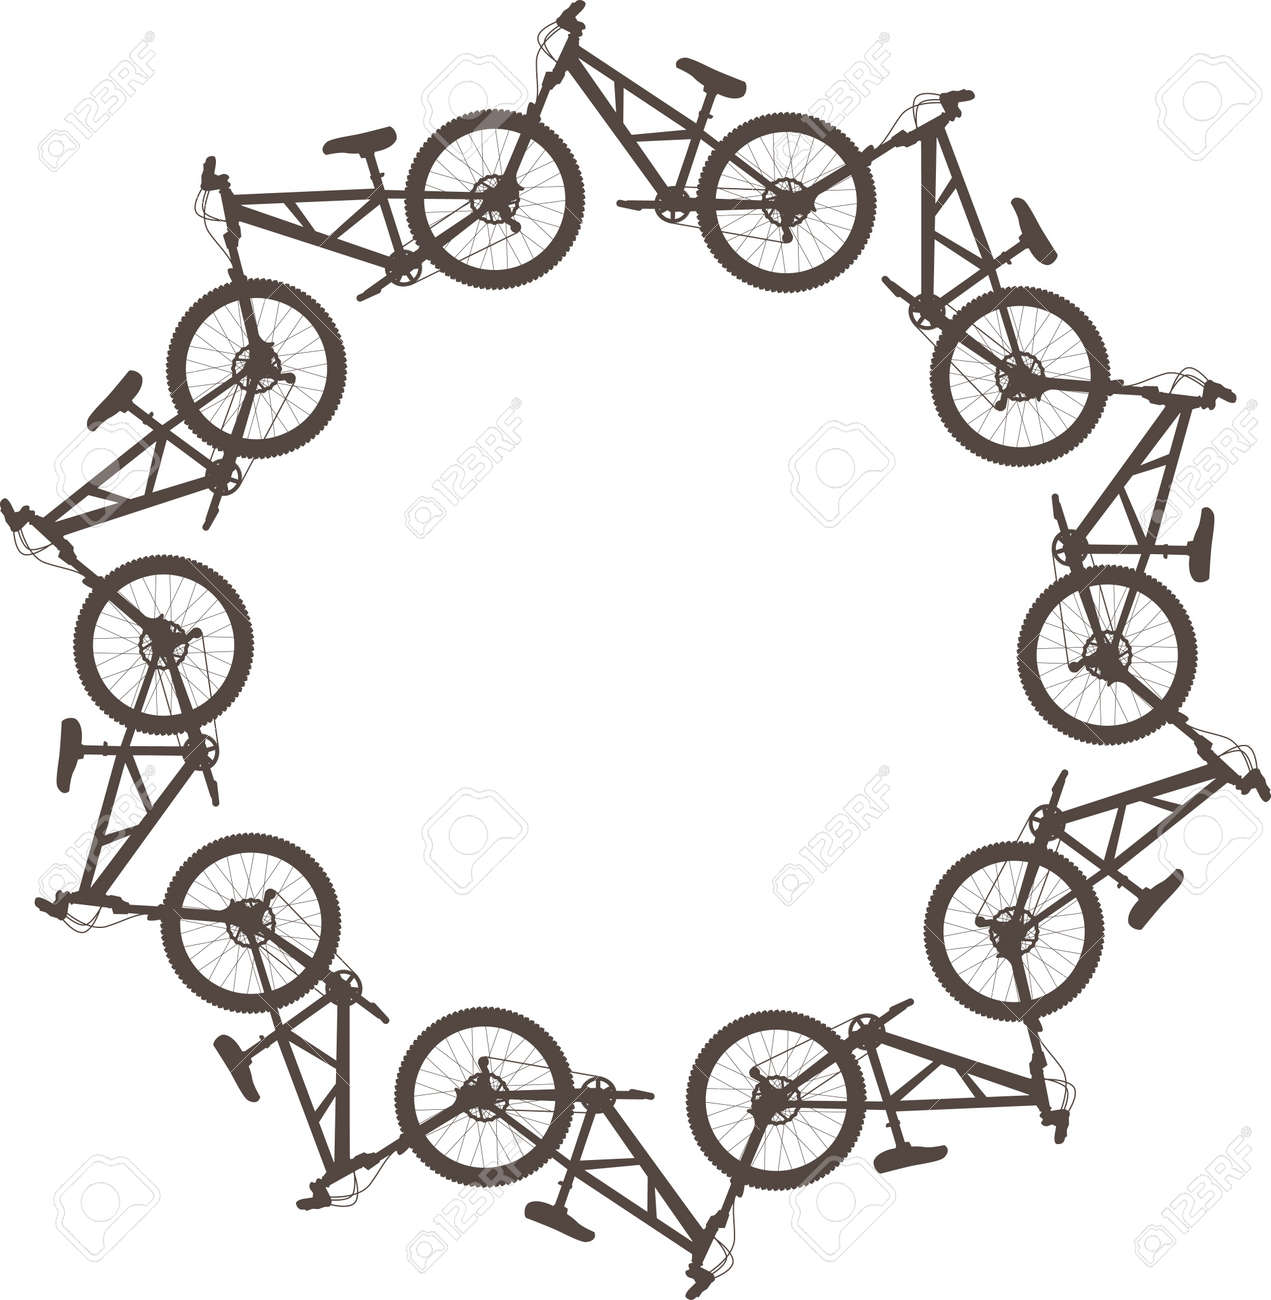 Vector illustration with bikes in a circle - 22188369